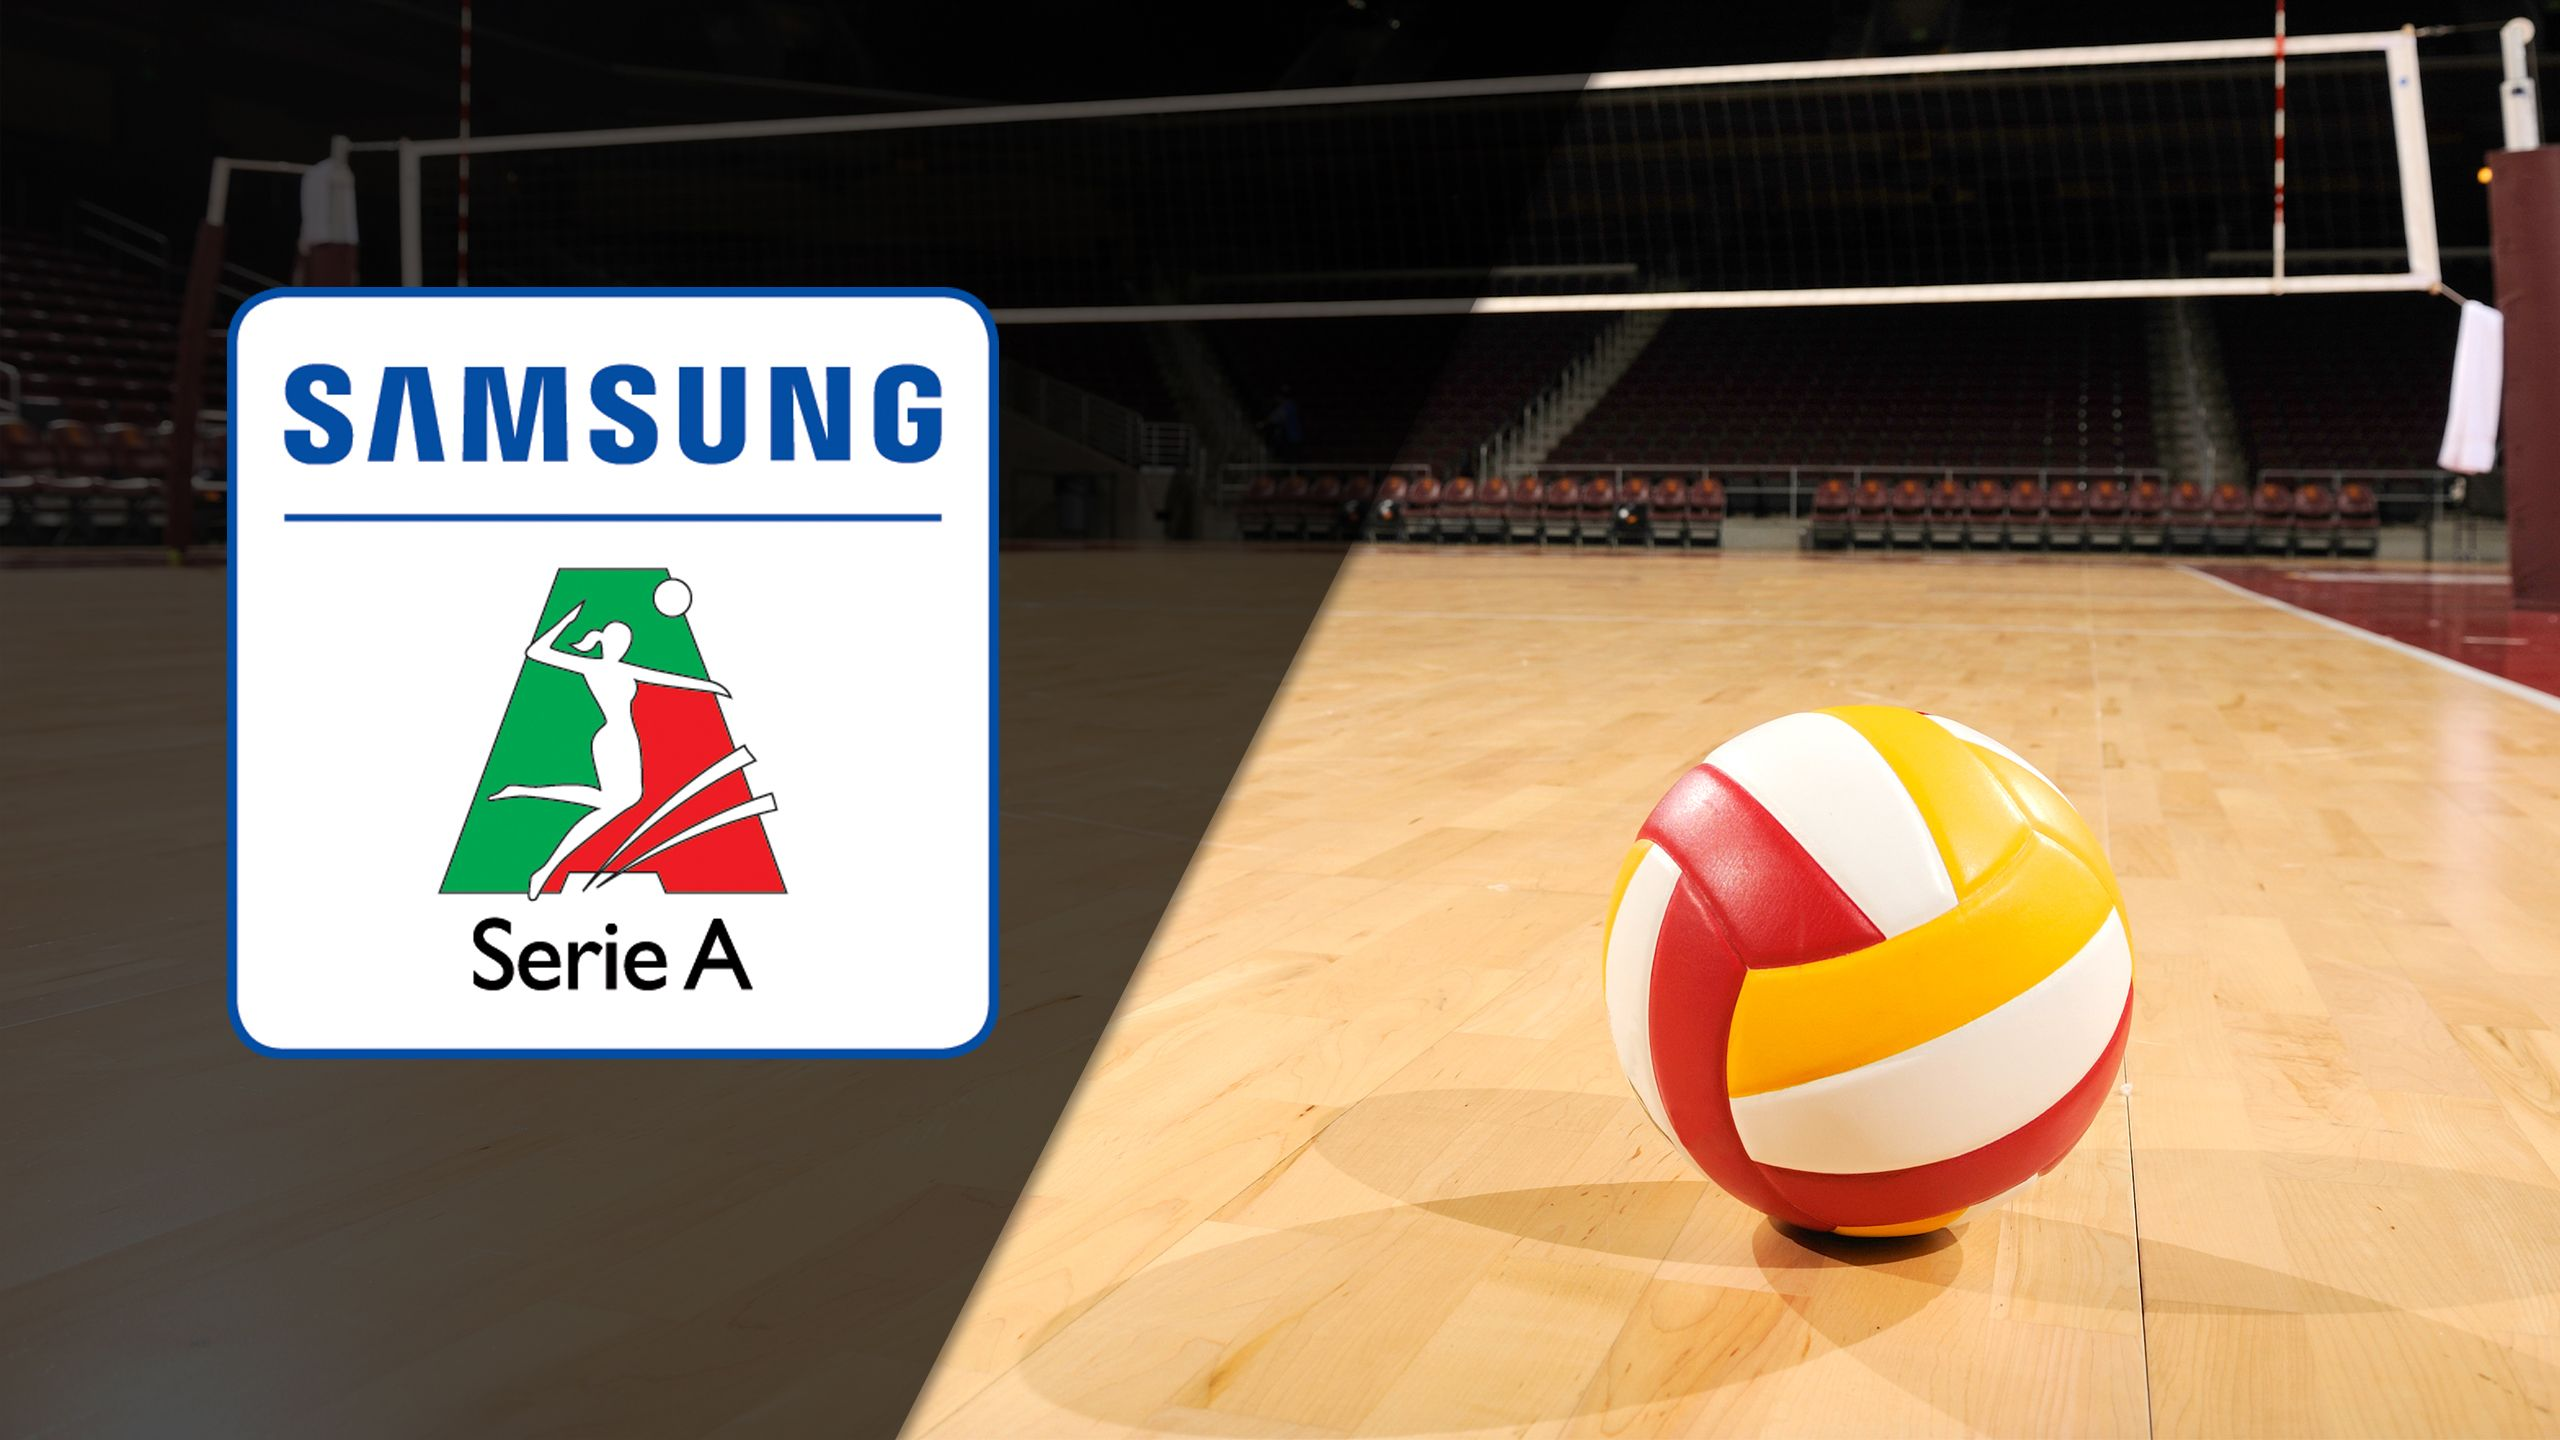 Igor Gorgonzola Novara vs. Il Bisonte Firenze (Italian Serie A Women's Volleyball League)